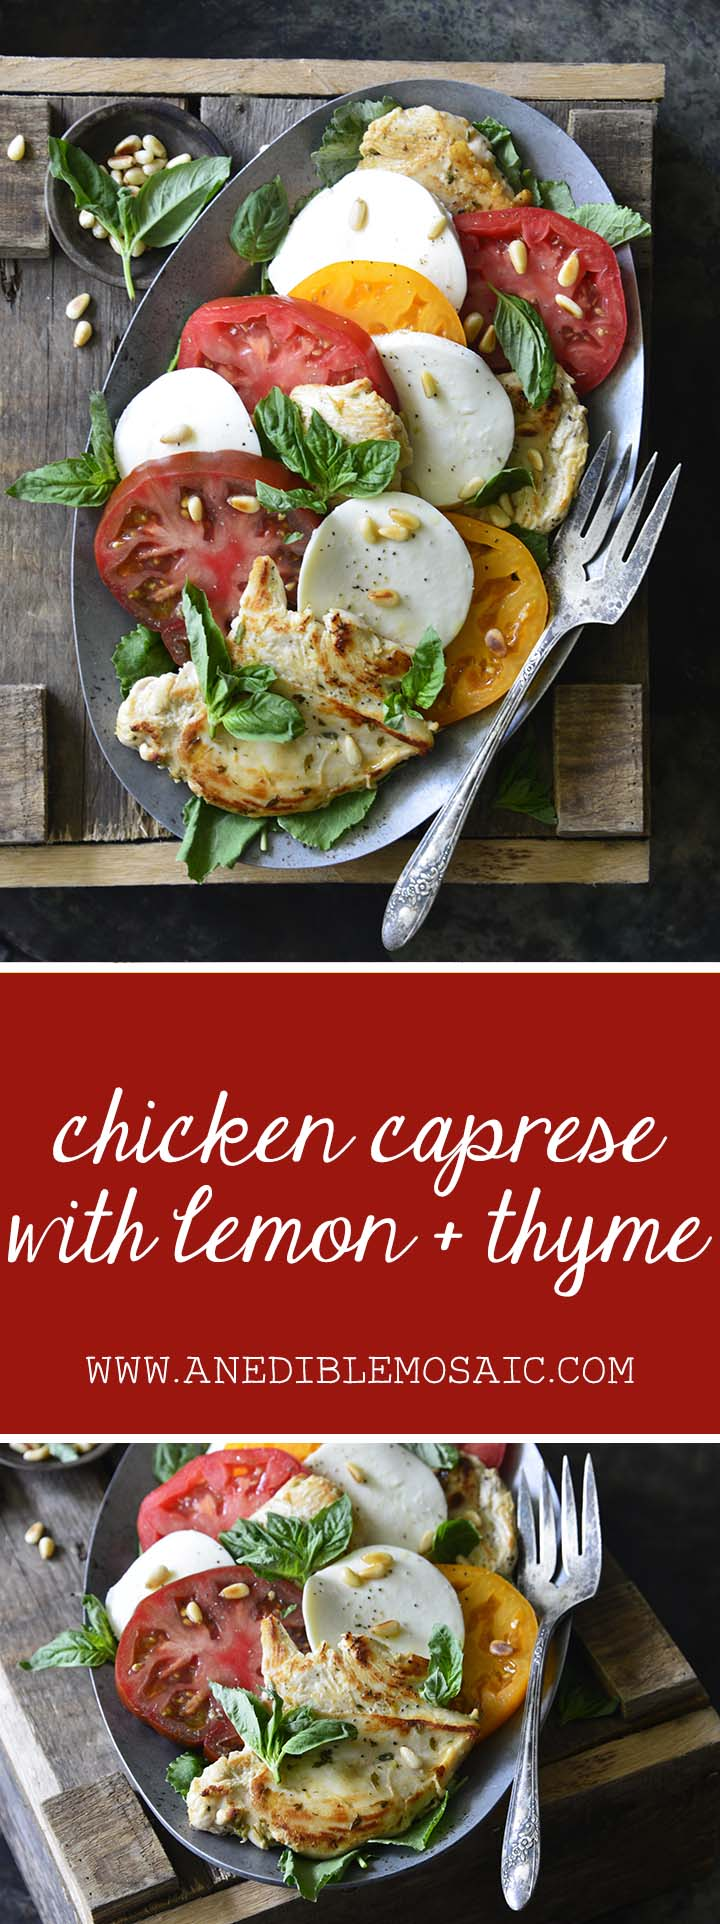 CHICKEN CAPRESE RECIPE WITH LEMON AND THYME AN EDIBLE MOSAIC